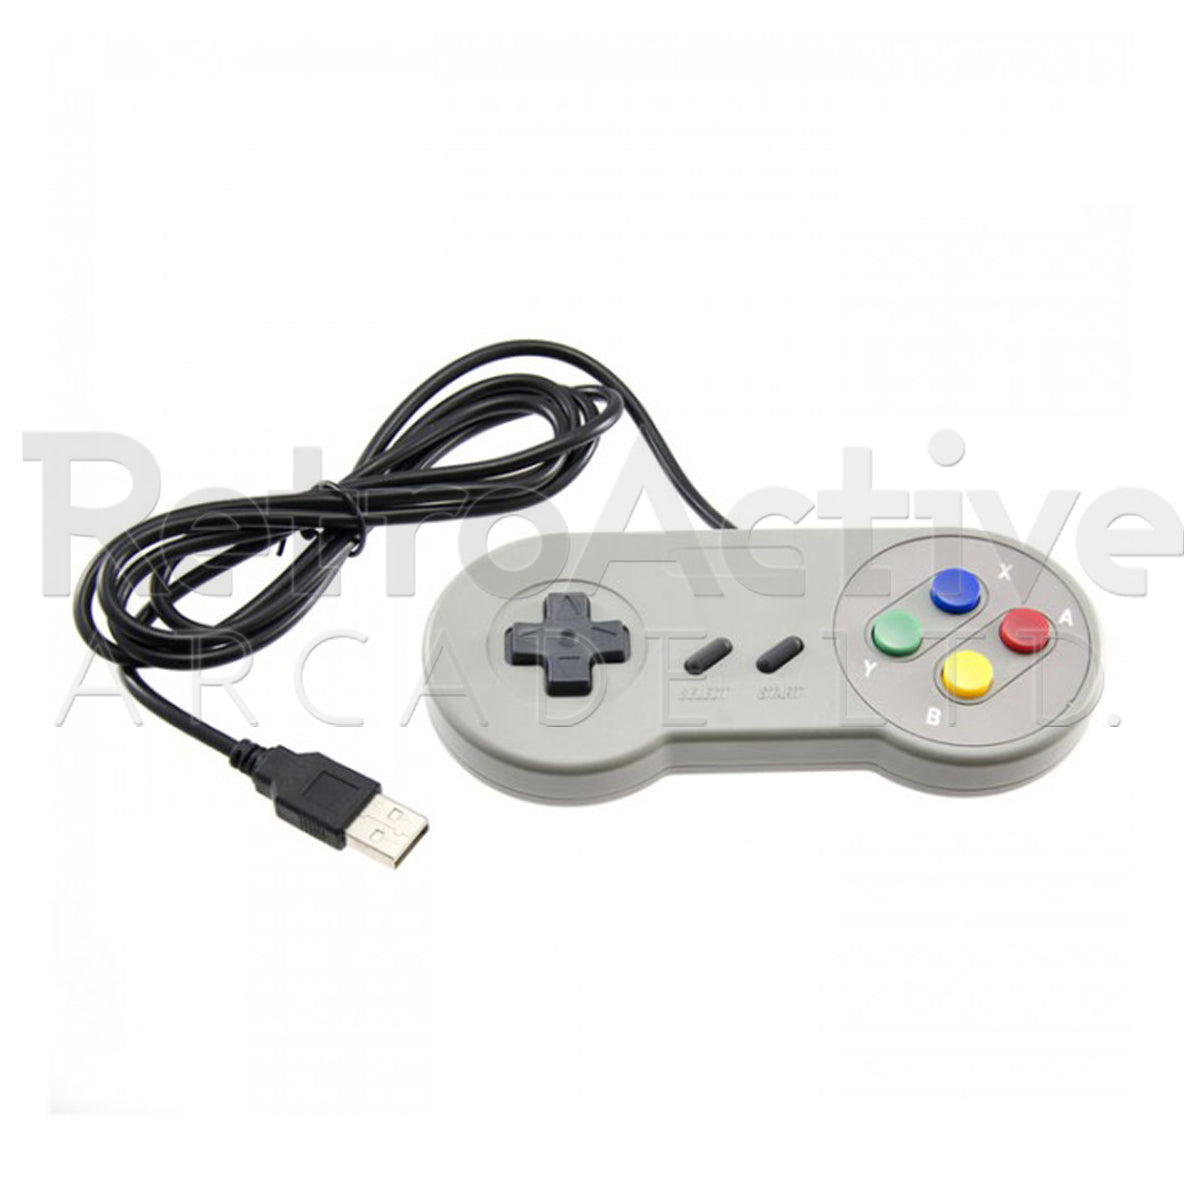 USB SNES Style Controller